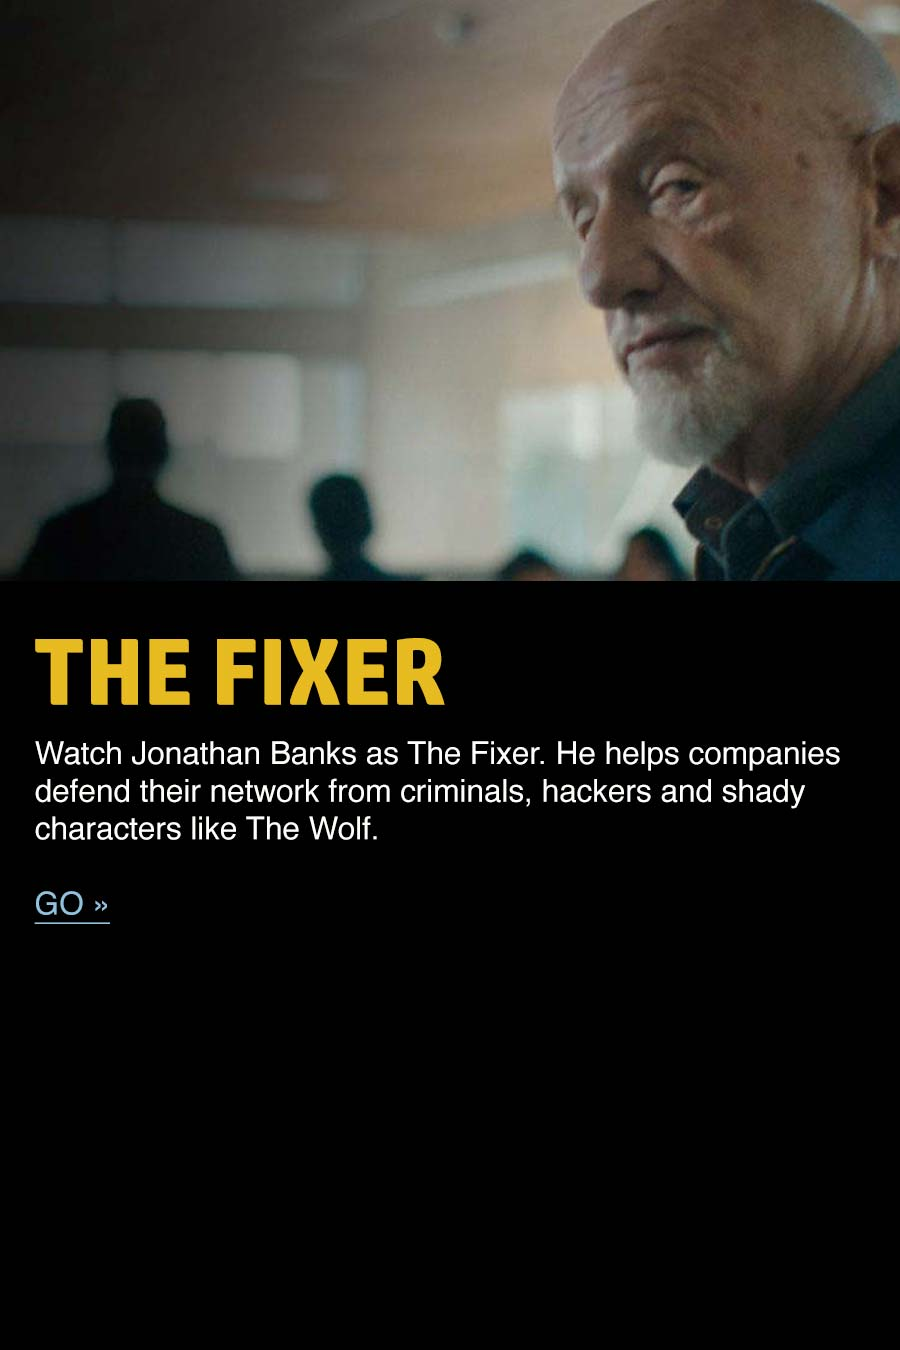 The Fixer, defend your network